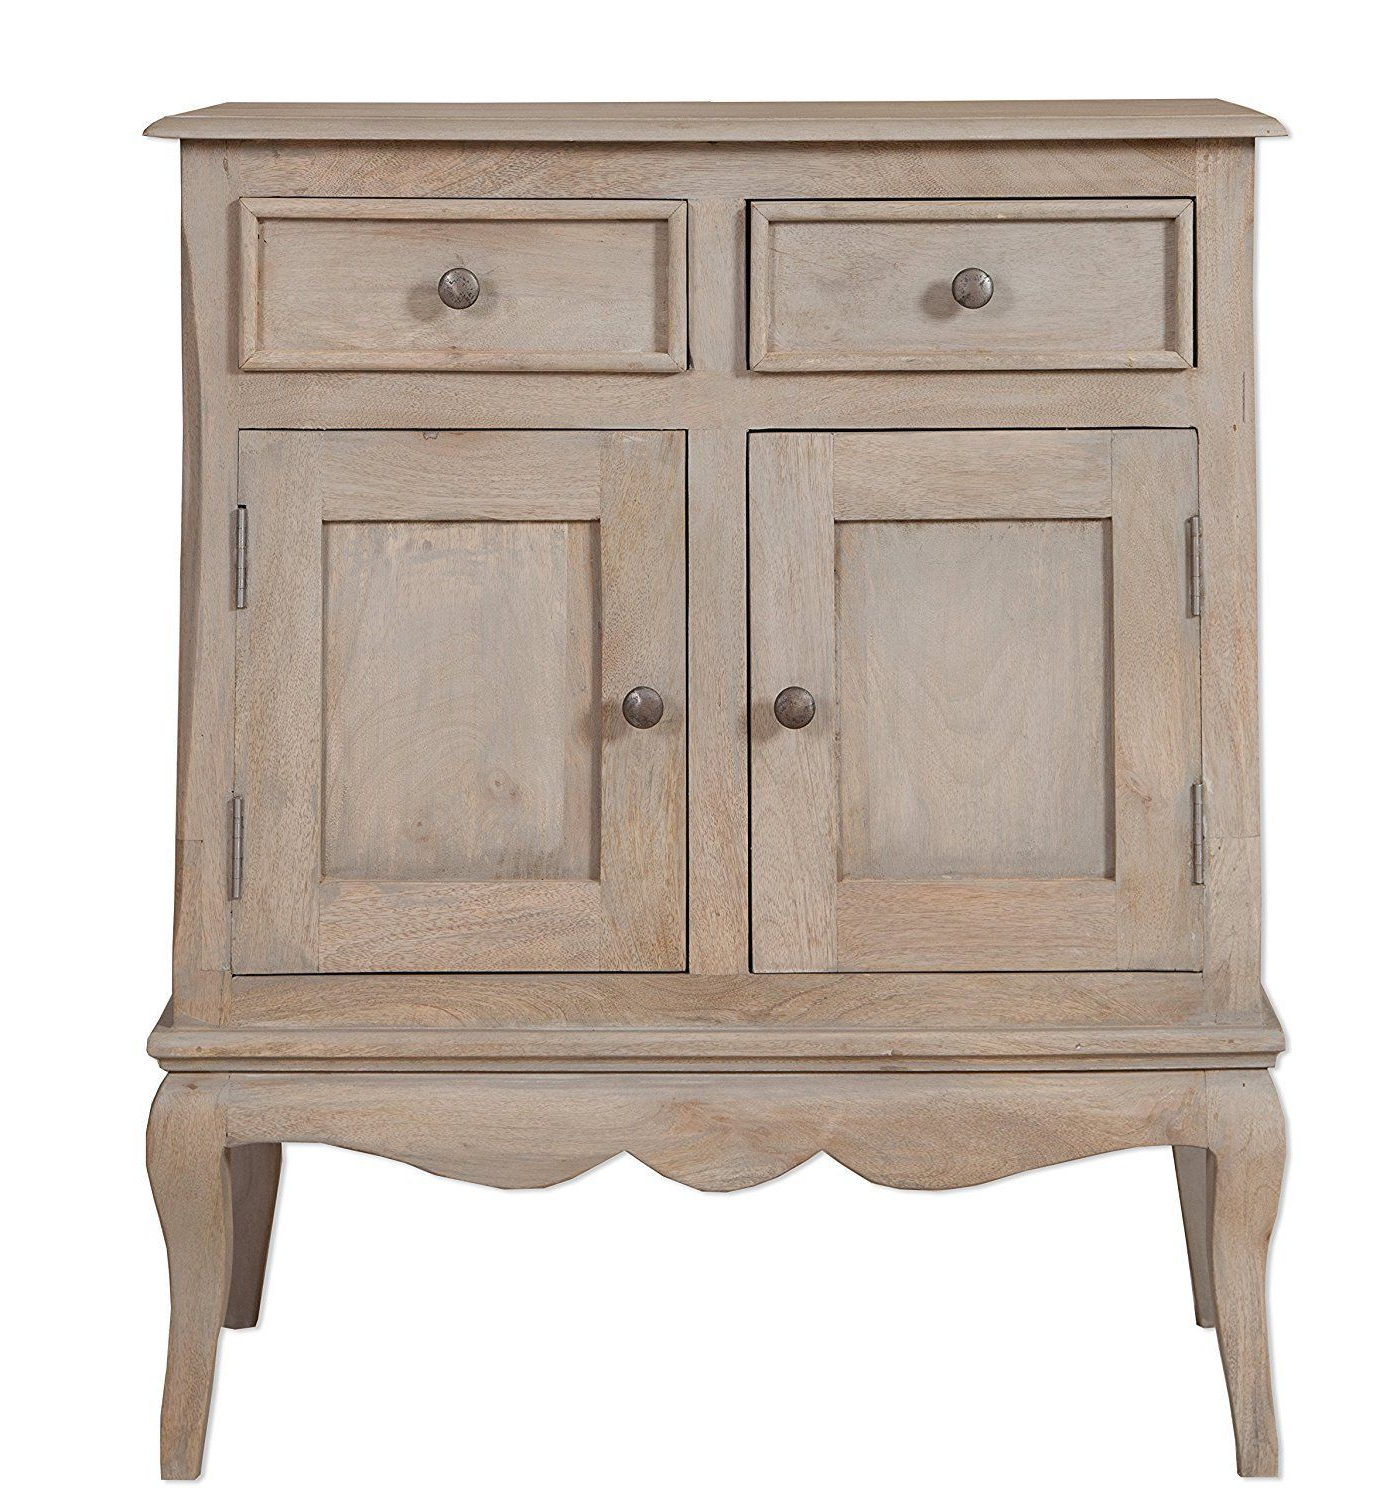 Loire French Grey Solid Mango Wood 2 Door 2 Drawer Hallway Cabinet Throughout Most Up To Date Mango Wood 2 Door/2 Drawer Sideboards (View 11 of 20)